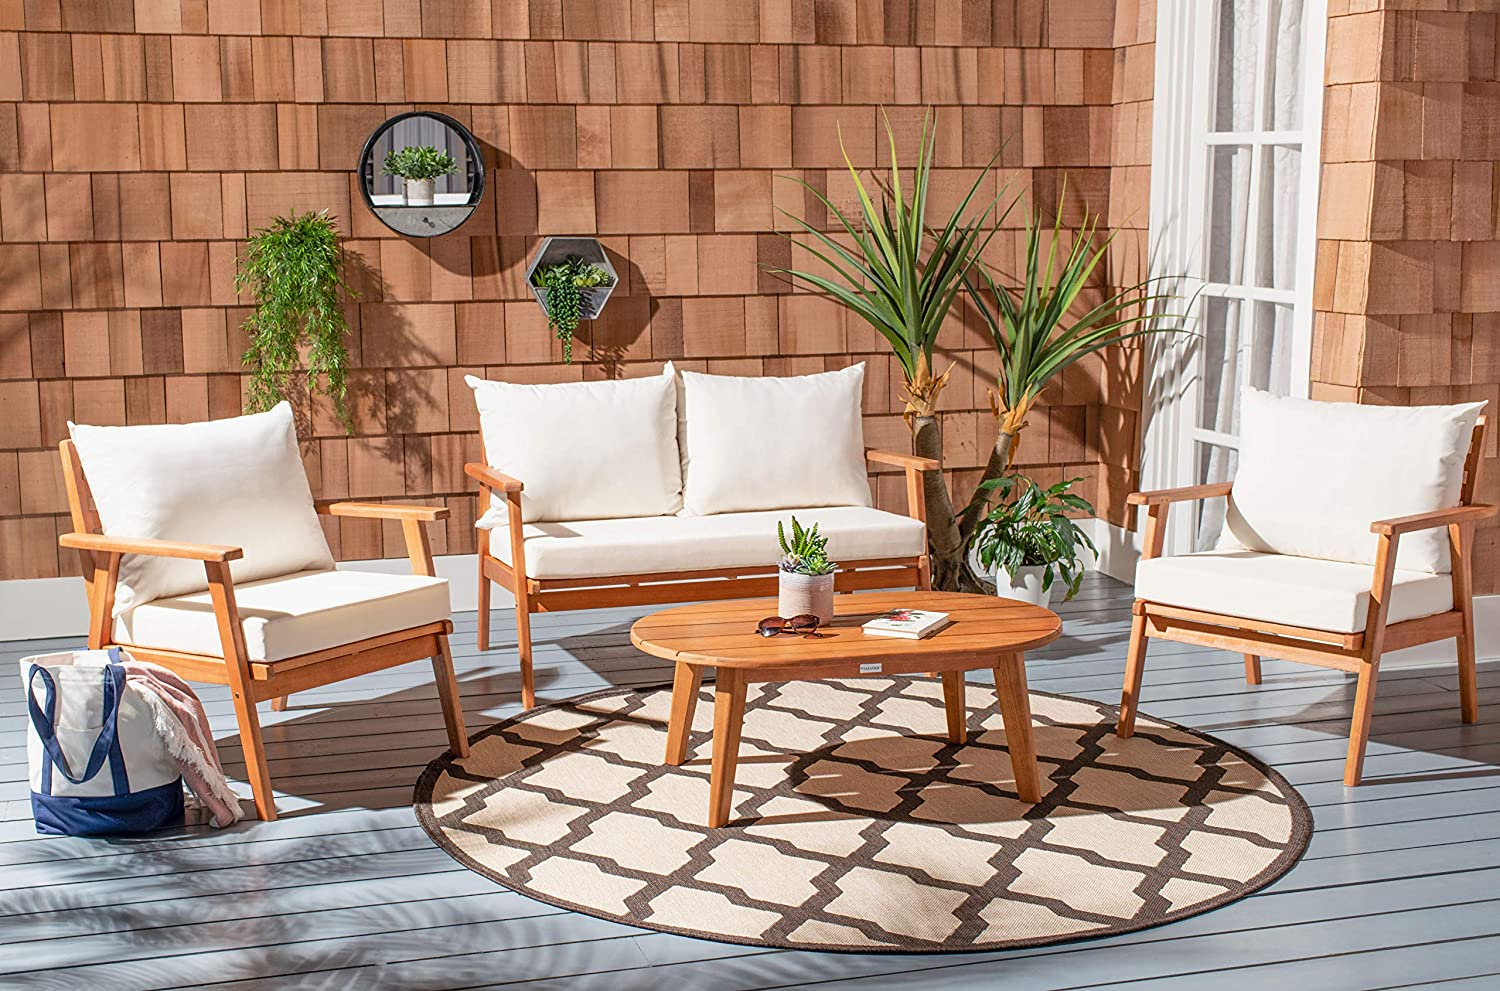 Safavieh PAT7050A Collection Deacon Natural and Beige 4-Piece Outdoor Patio Set